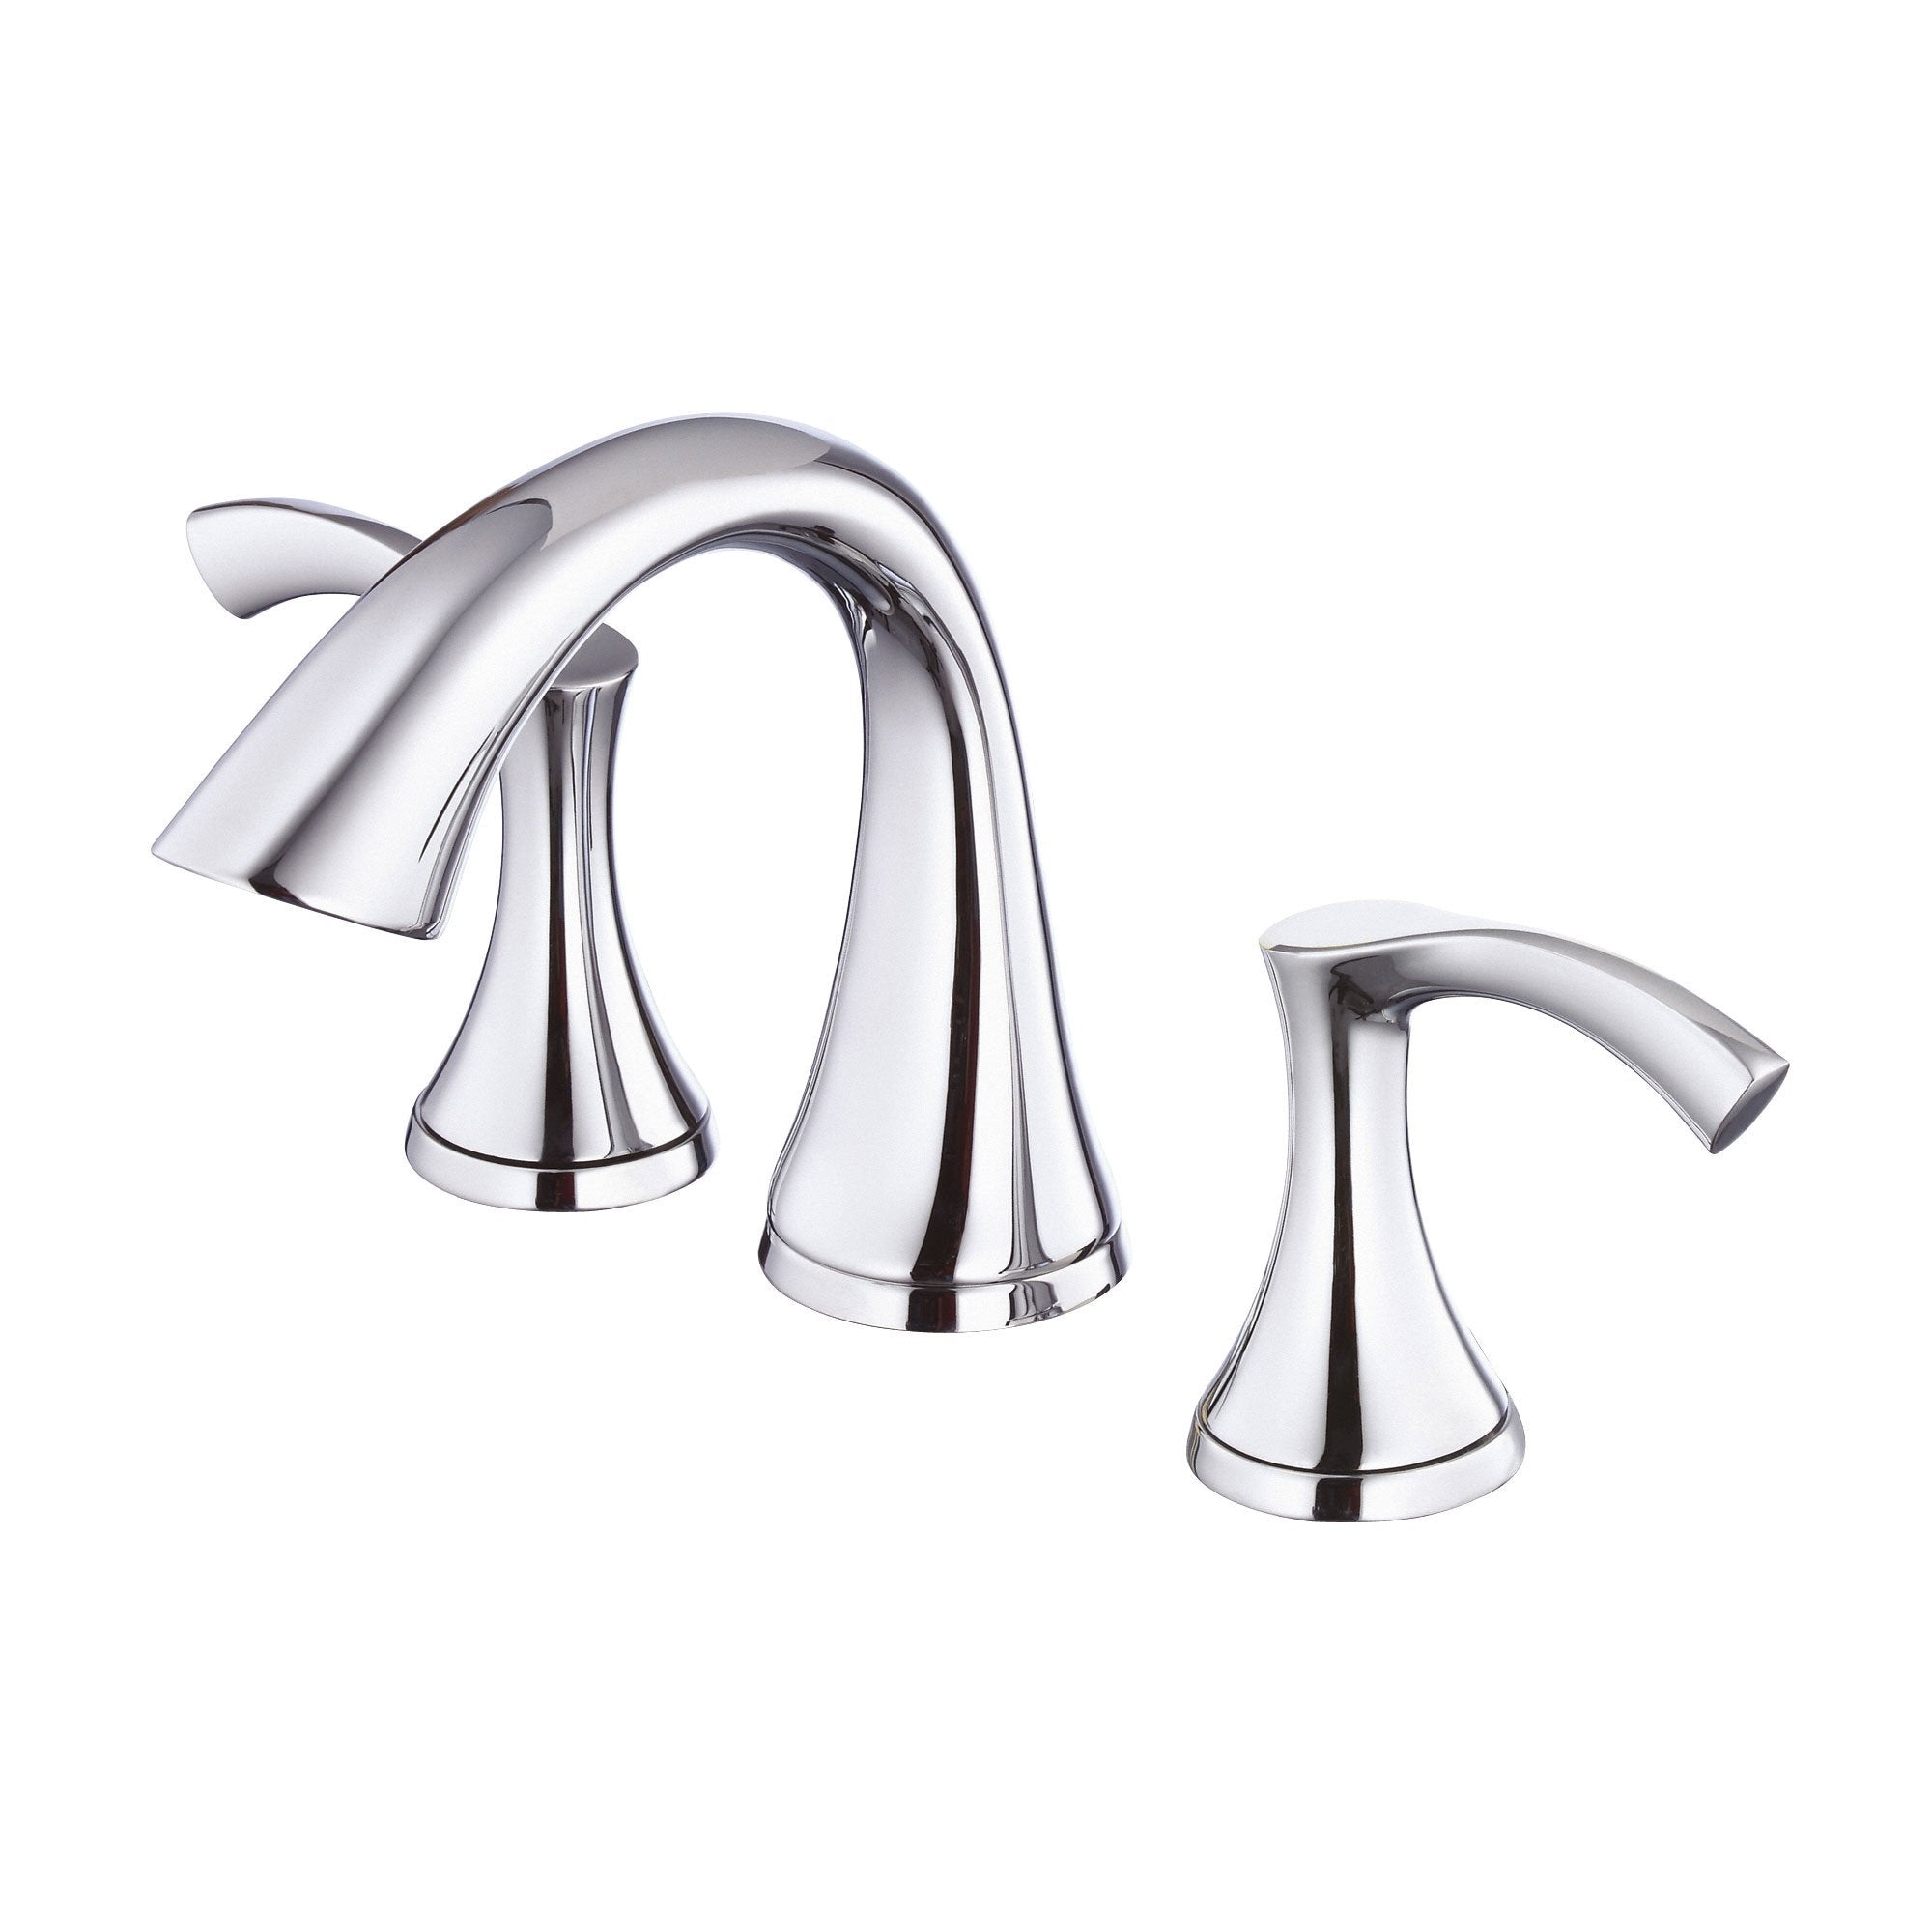 "Danze Antioch Chrome 8"" 2 Handle Widespread Bathroom Sink Faucet"